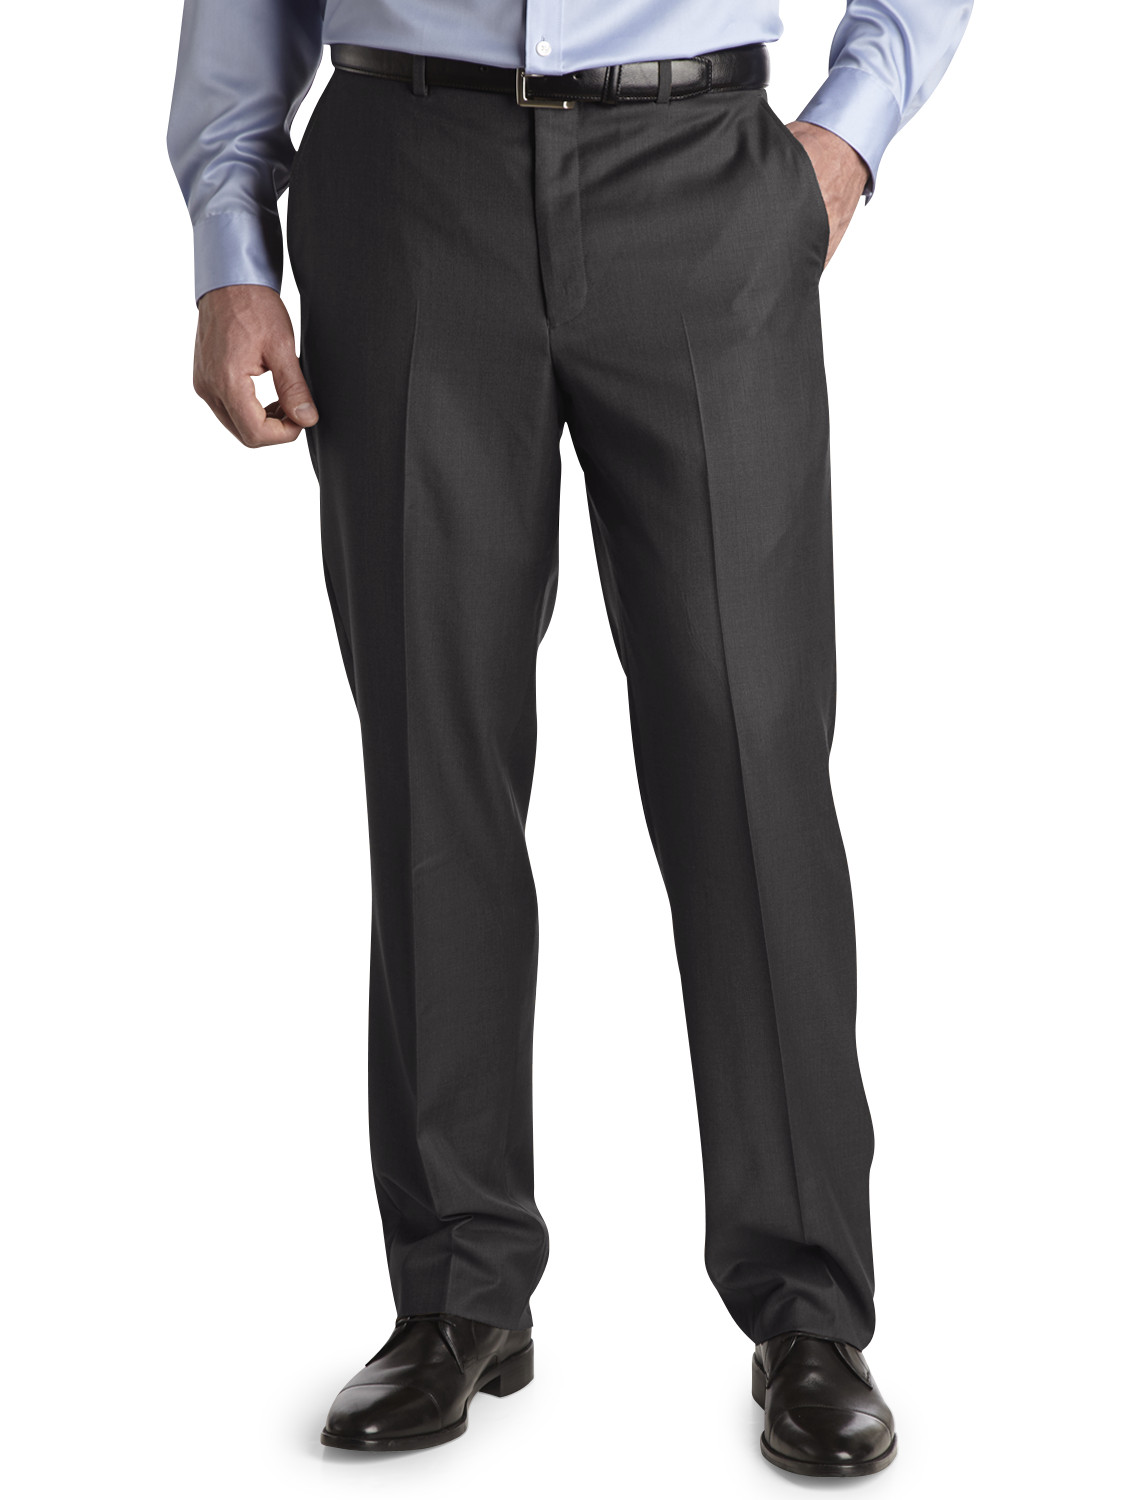 Pleated Dress Pants For Men